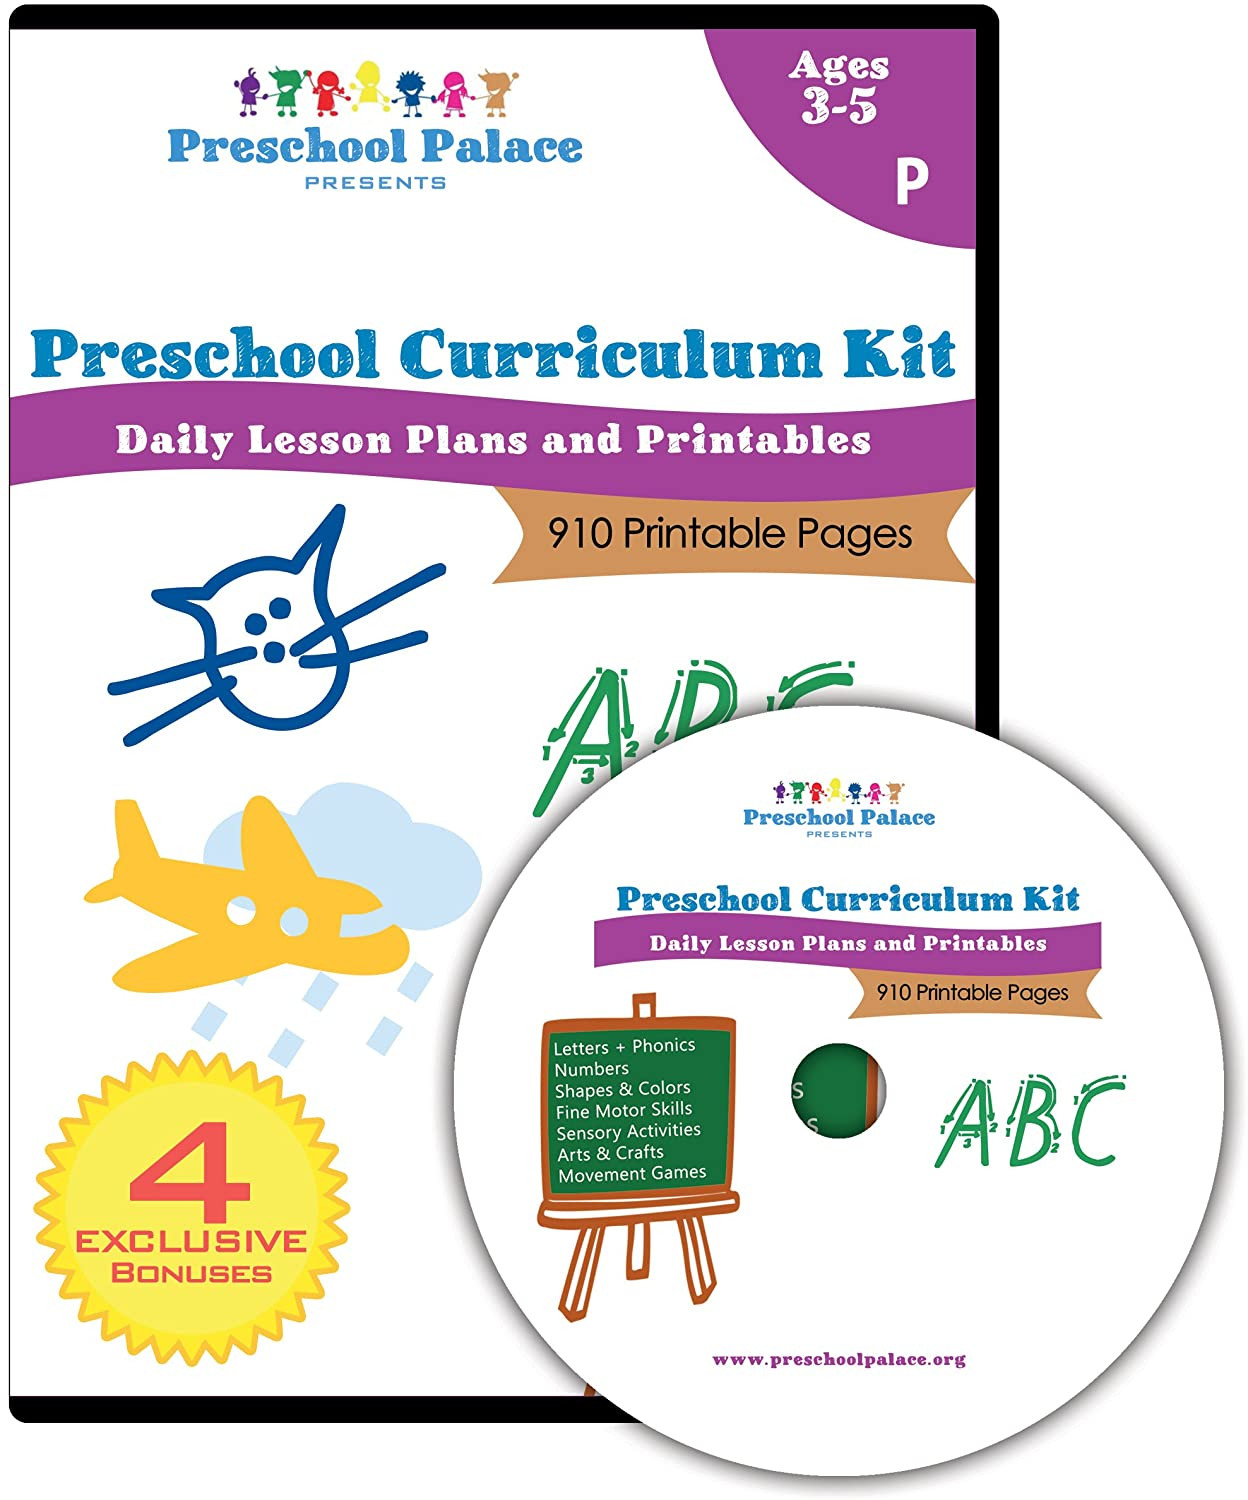 Preschool Palace Curriculum the Ultimate Preschool Curriculum Kit Printable Workbooks Lesson Plans and Learning Activities for Preschoolers Pre K Kids and toddlers Ages 3